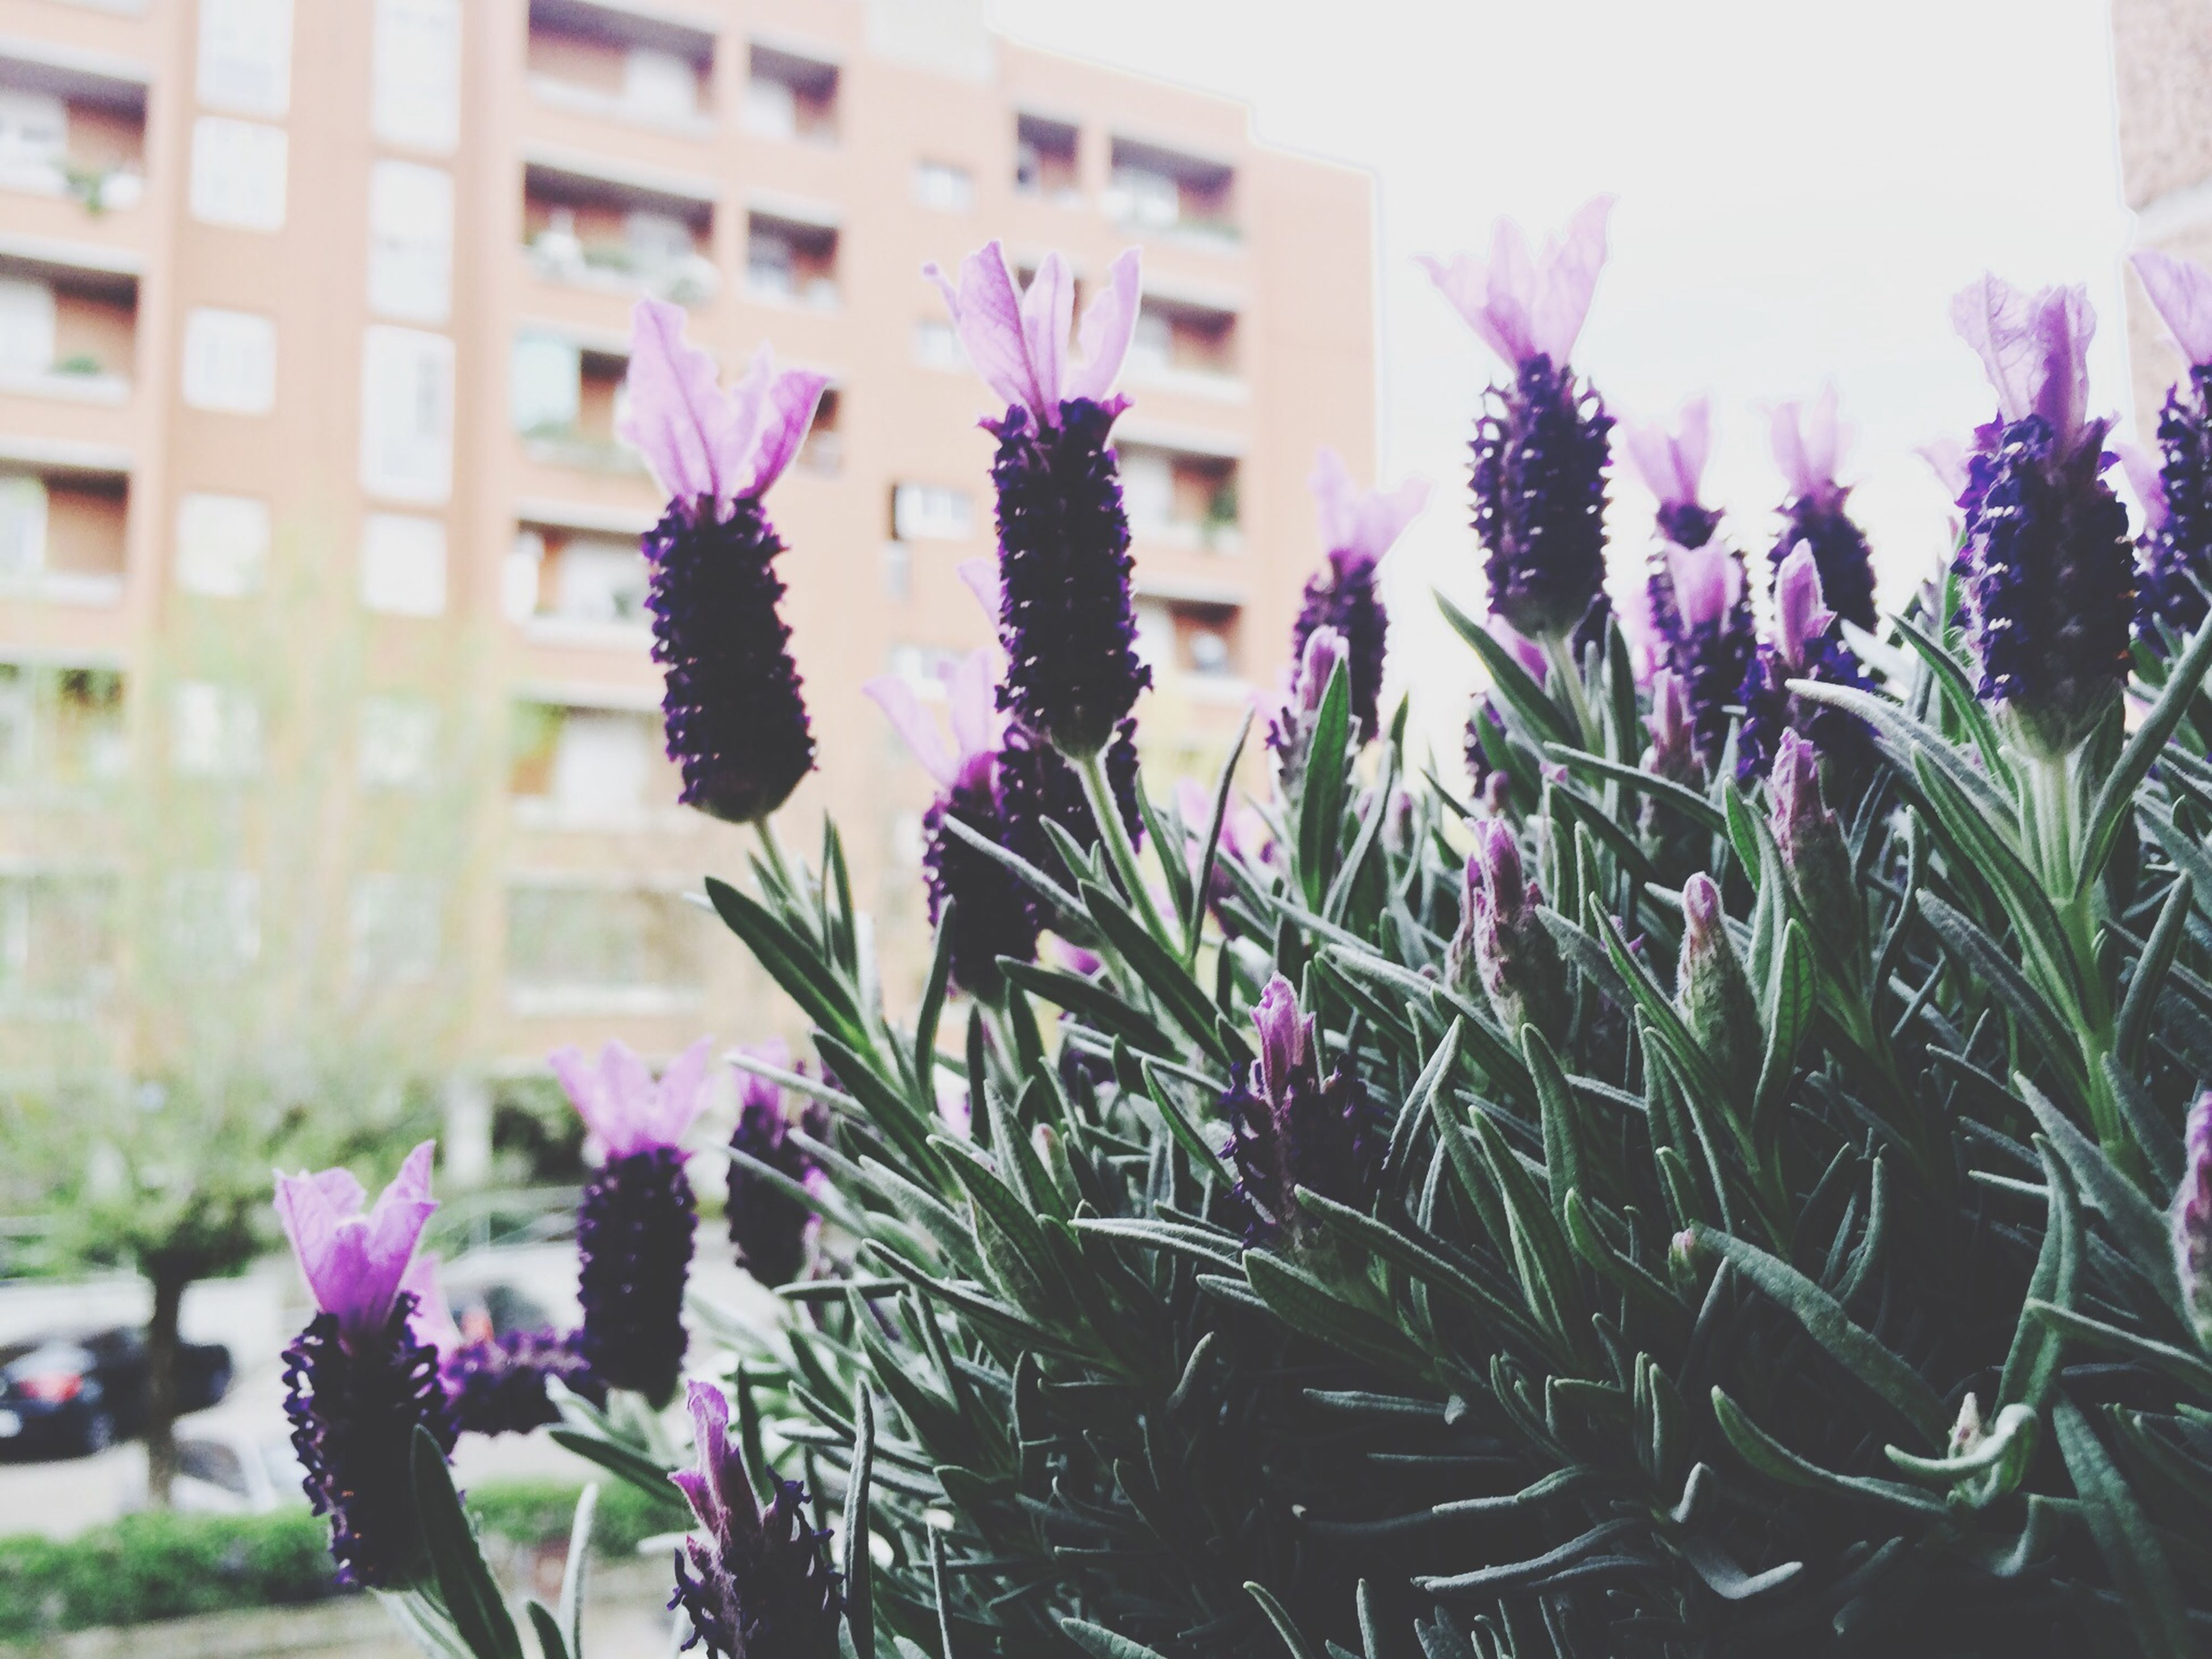 flower, growth, freshness, fragility, plant, purple, blooming, petal, building exterior, beauty in nature, flower head, focus on foreground, nature, close-up, built structure, architecture, sunlight, day, in bloom, outdoors